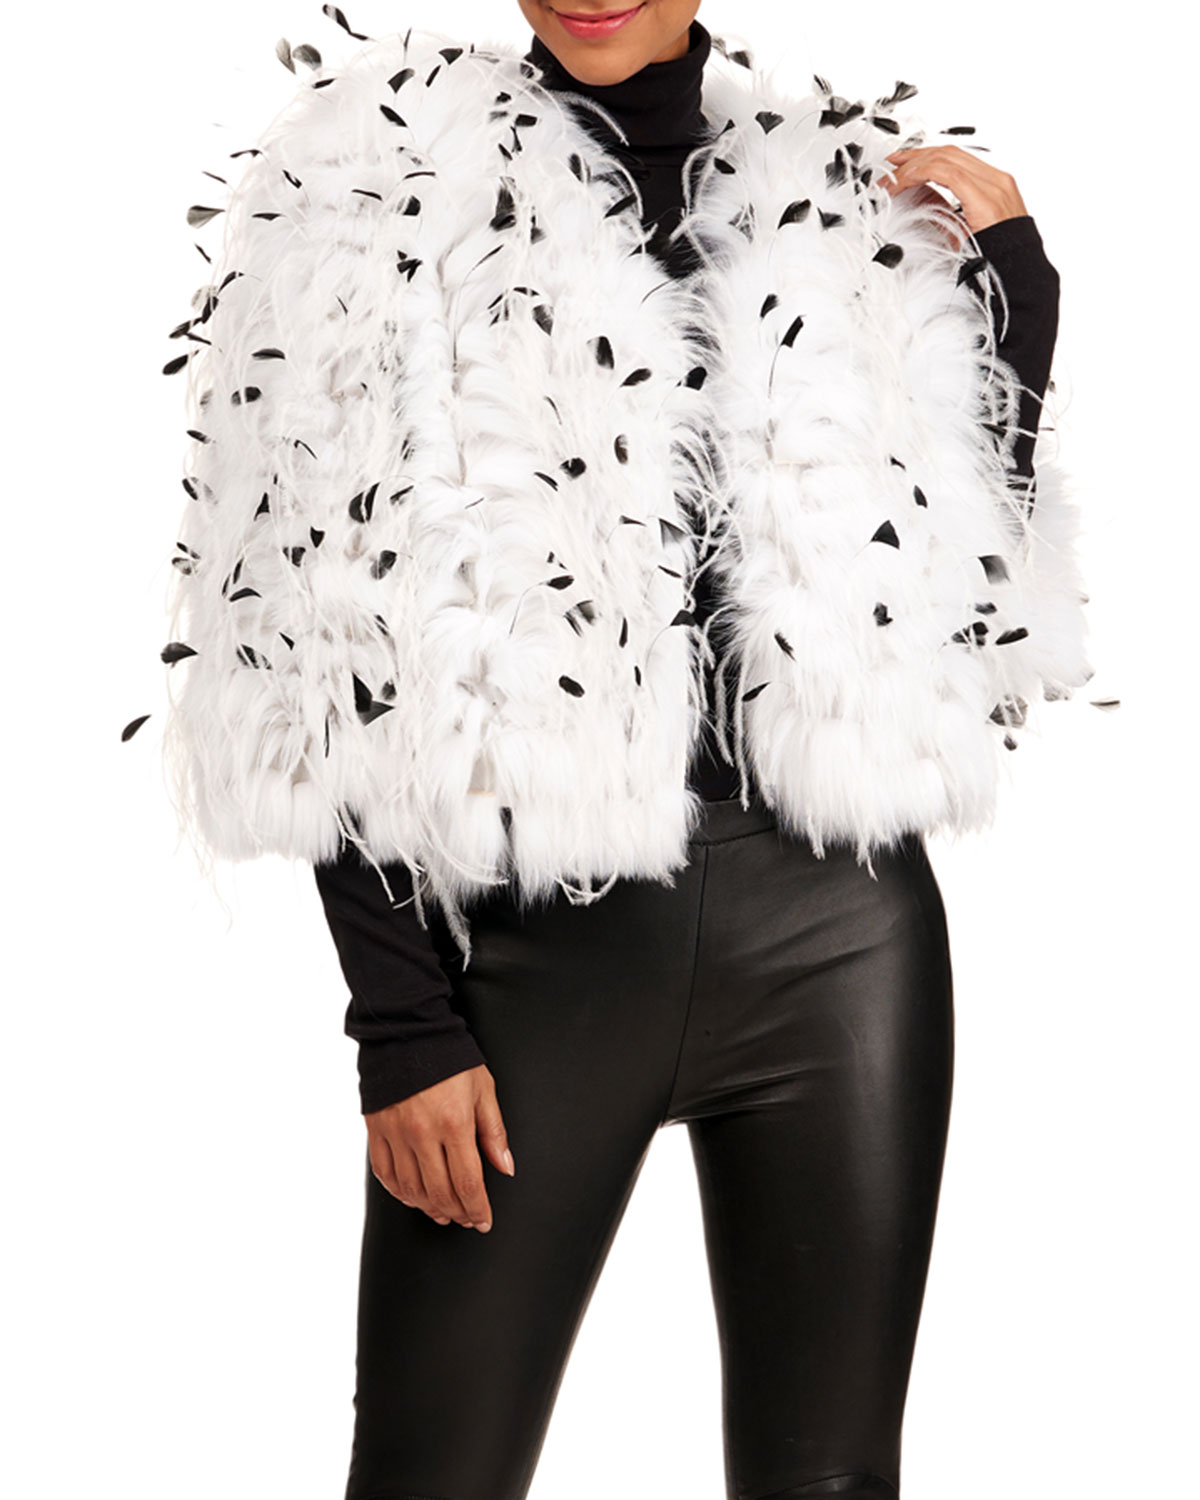 Oscar De La Renta Jackets SHADOW FOX FUR JACKET W/ OSTRICH AND COQUE FEATHERS